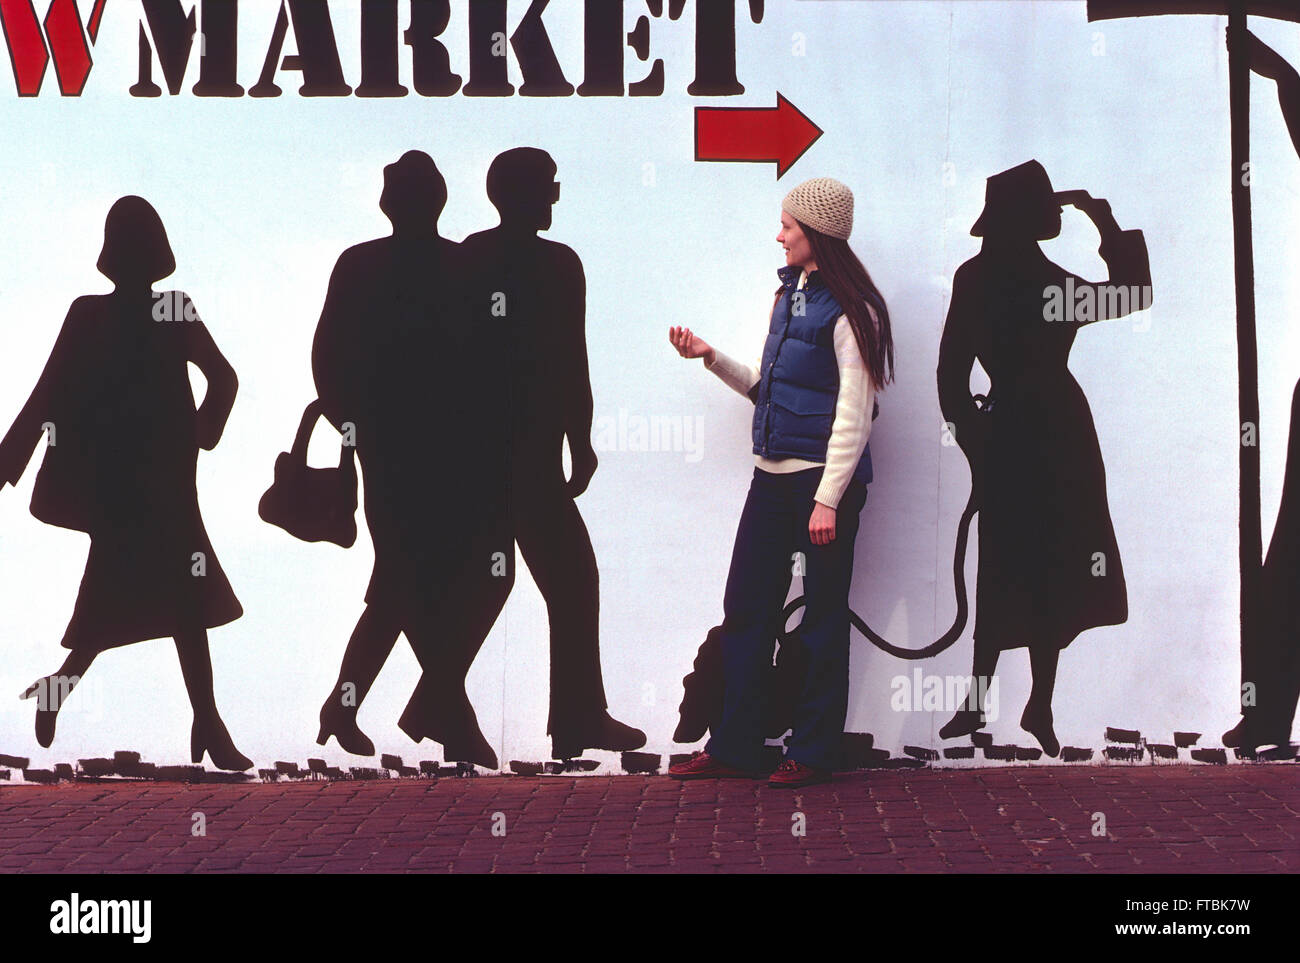 Attractive woman juxtaposed against life sized human figures in wall mural - Stock Image